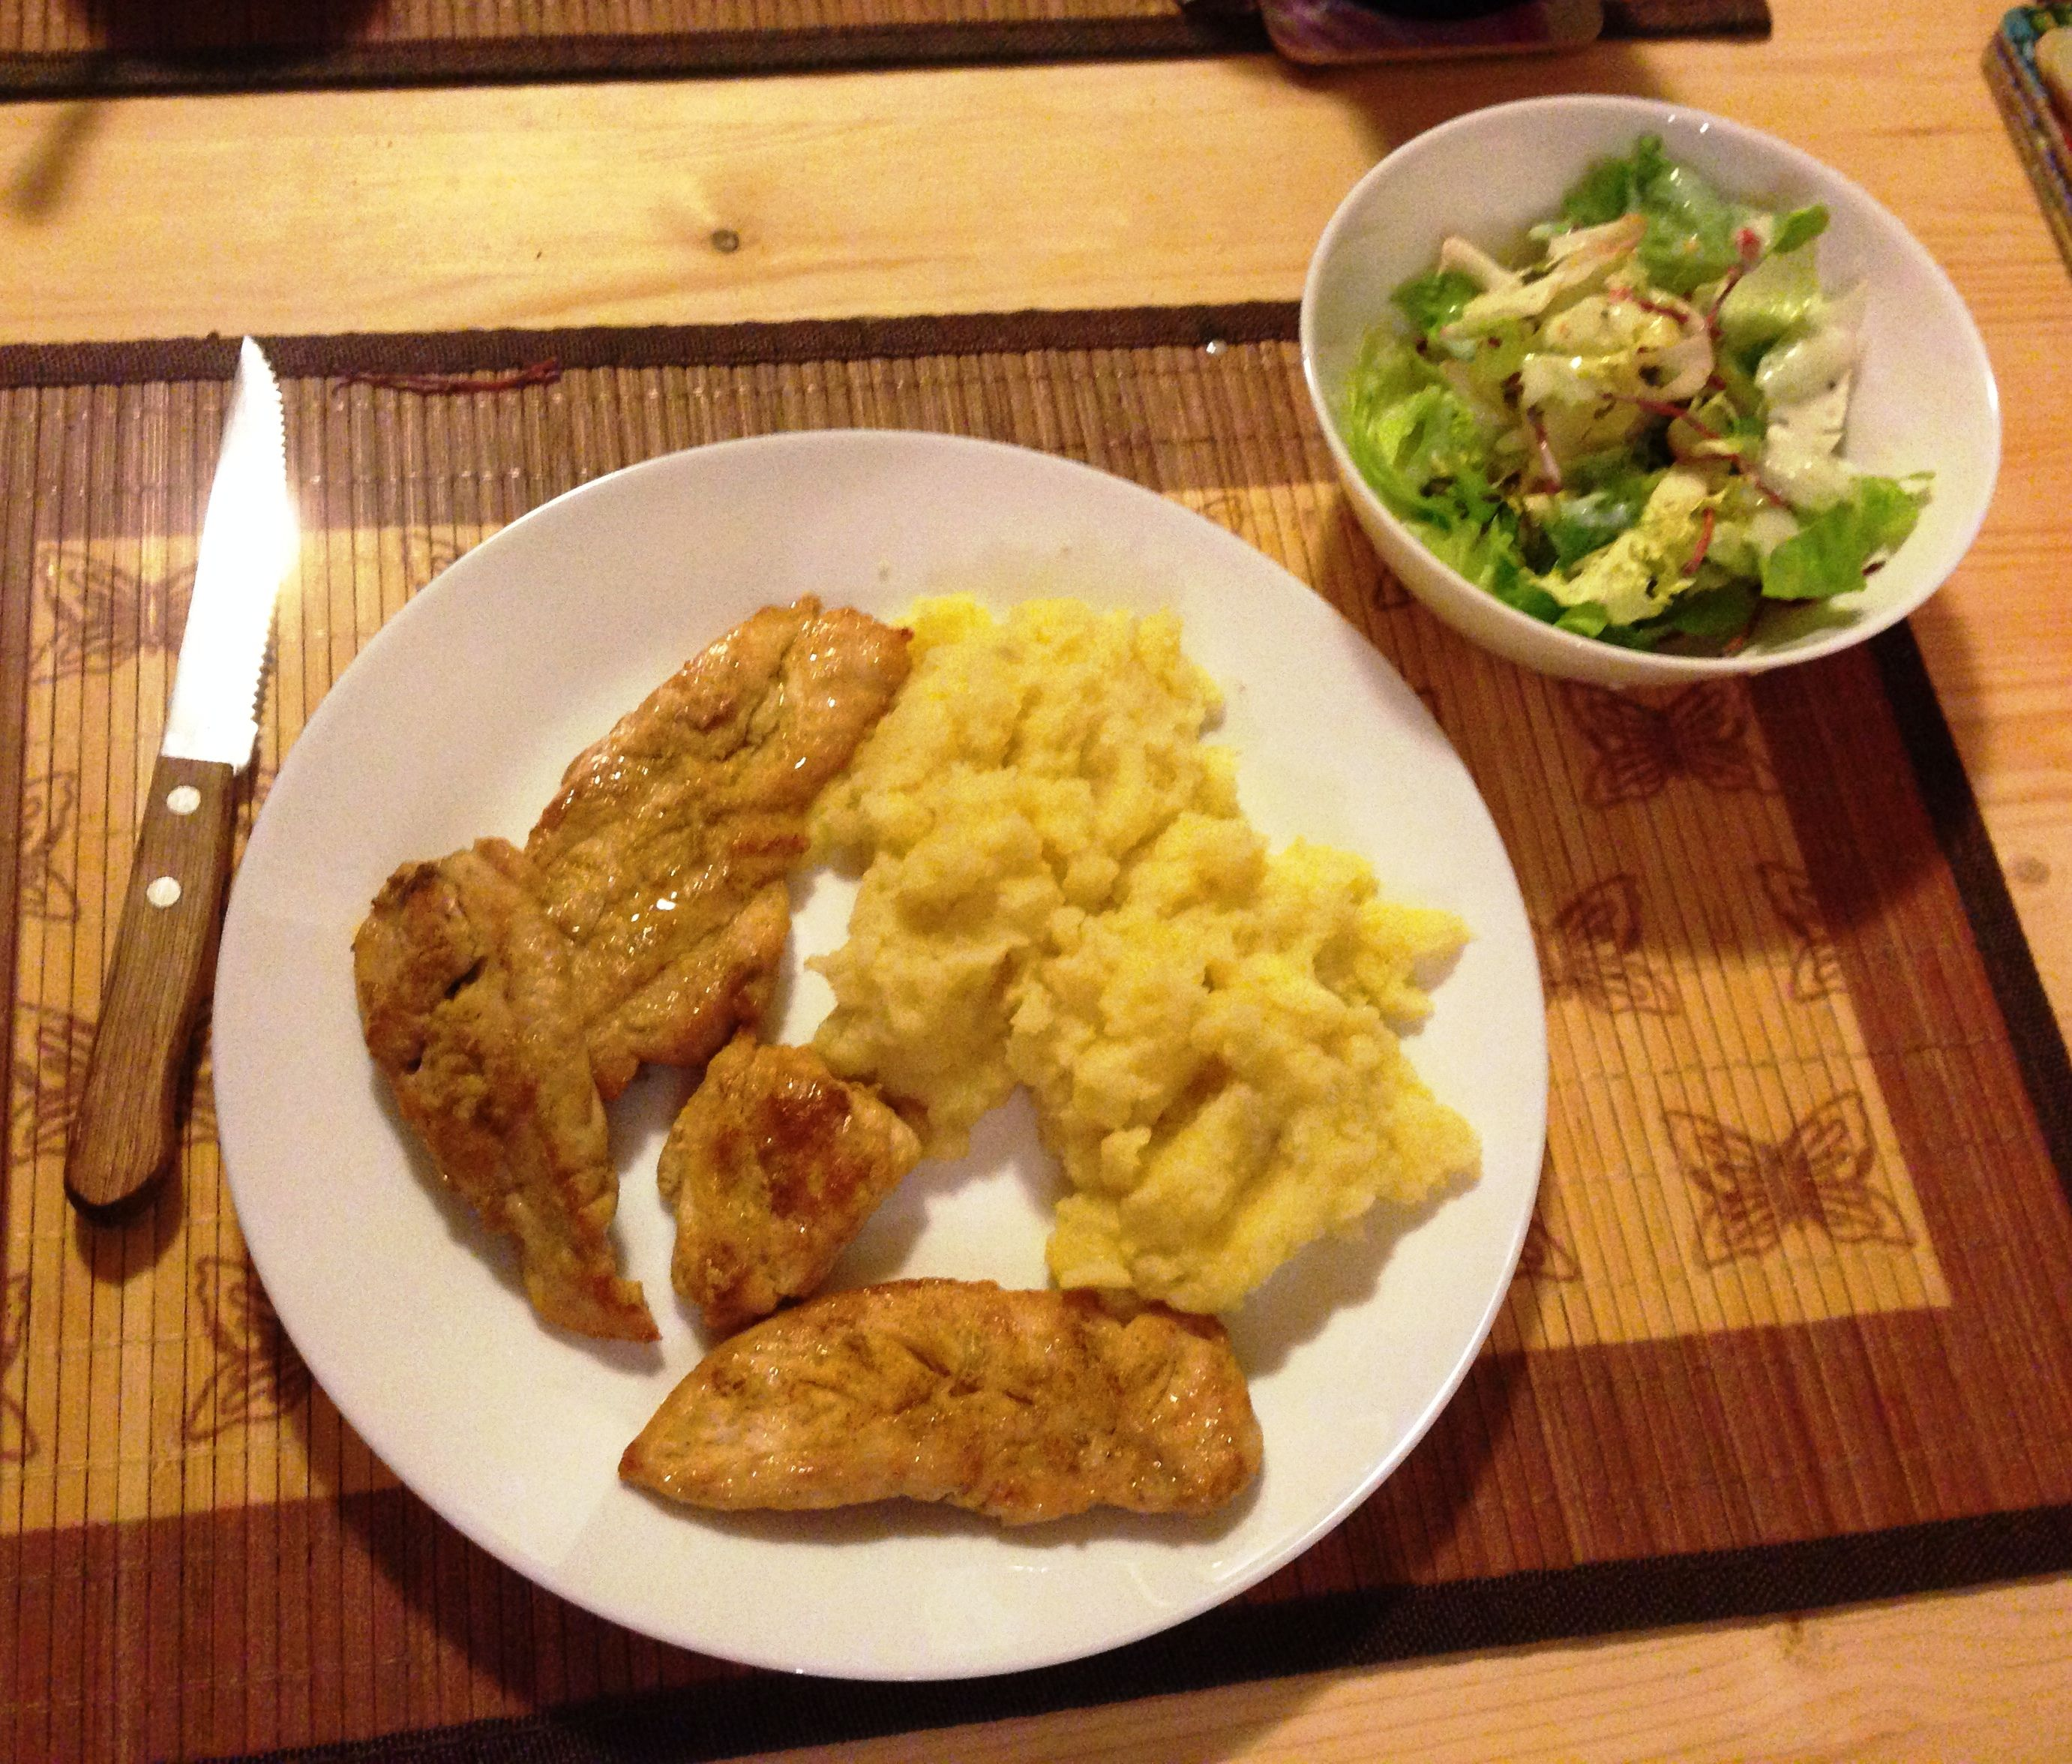 Dinner 30 minutes your husband gonna love: smashed potatoes and and spicy chicken, salad